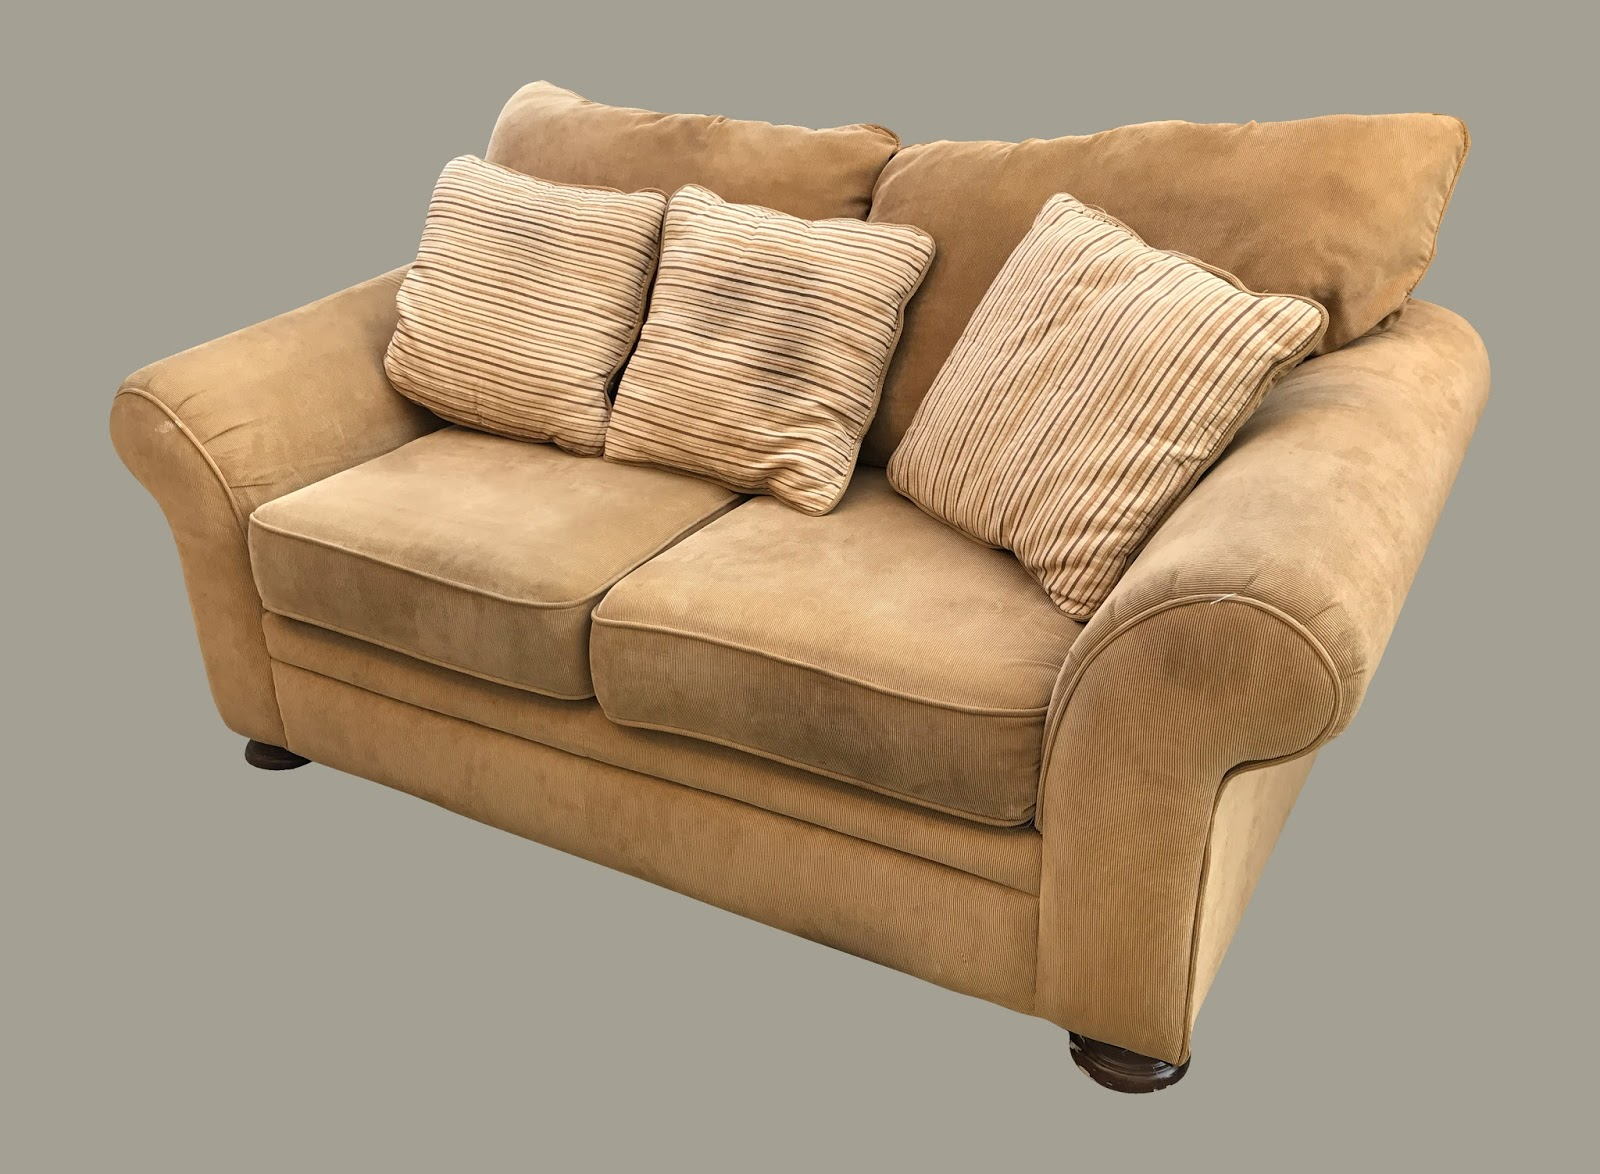 Uhuru Furniture Collectibles Plush Courderoy Loveseat 125 Sold